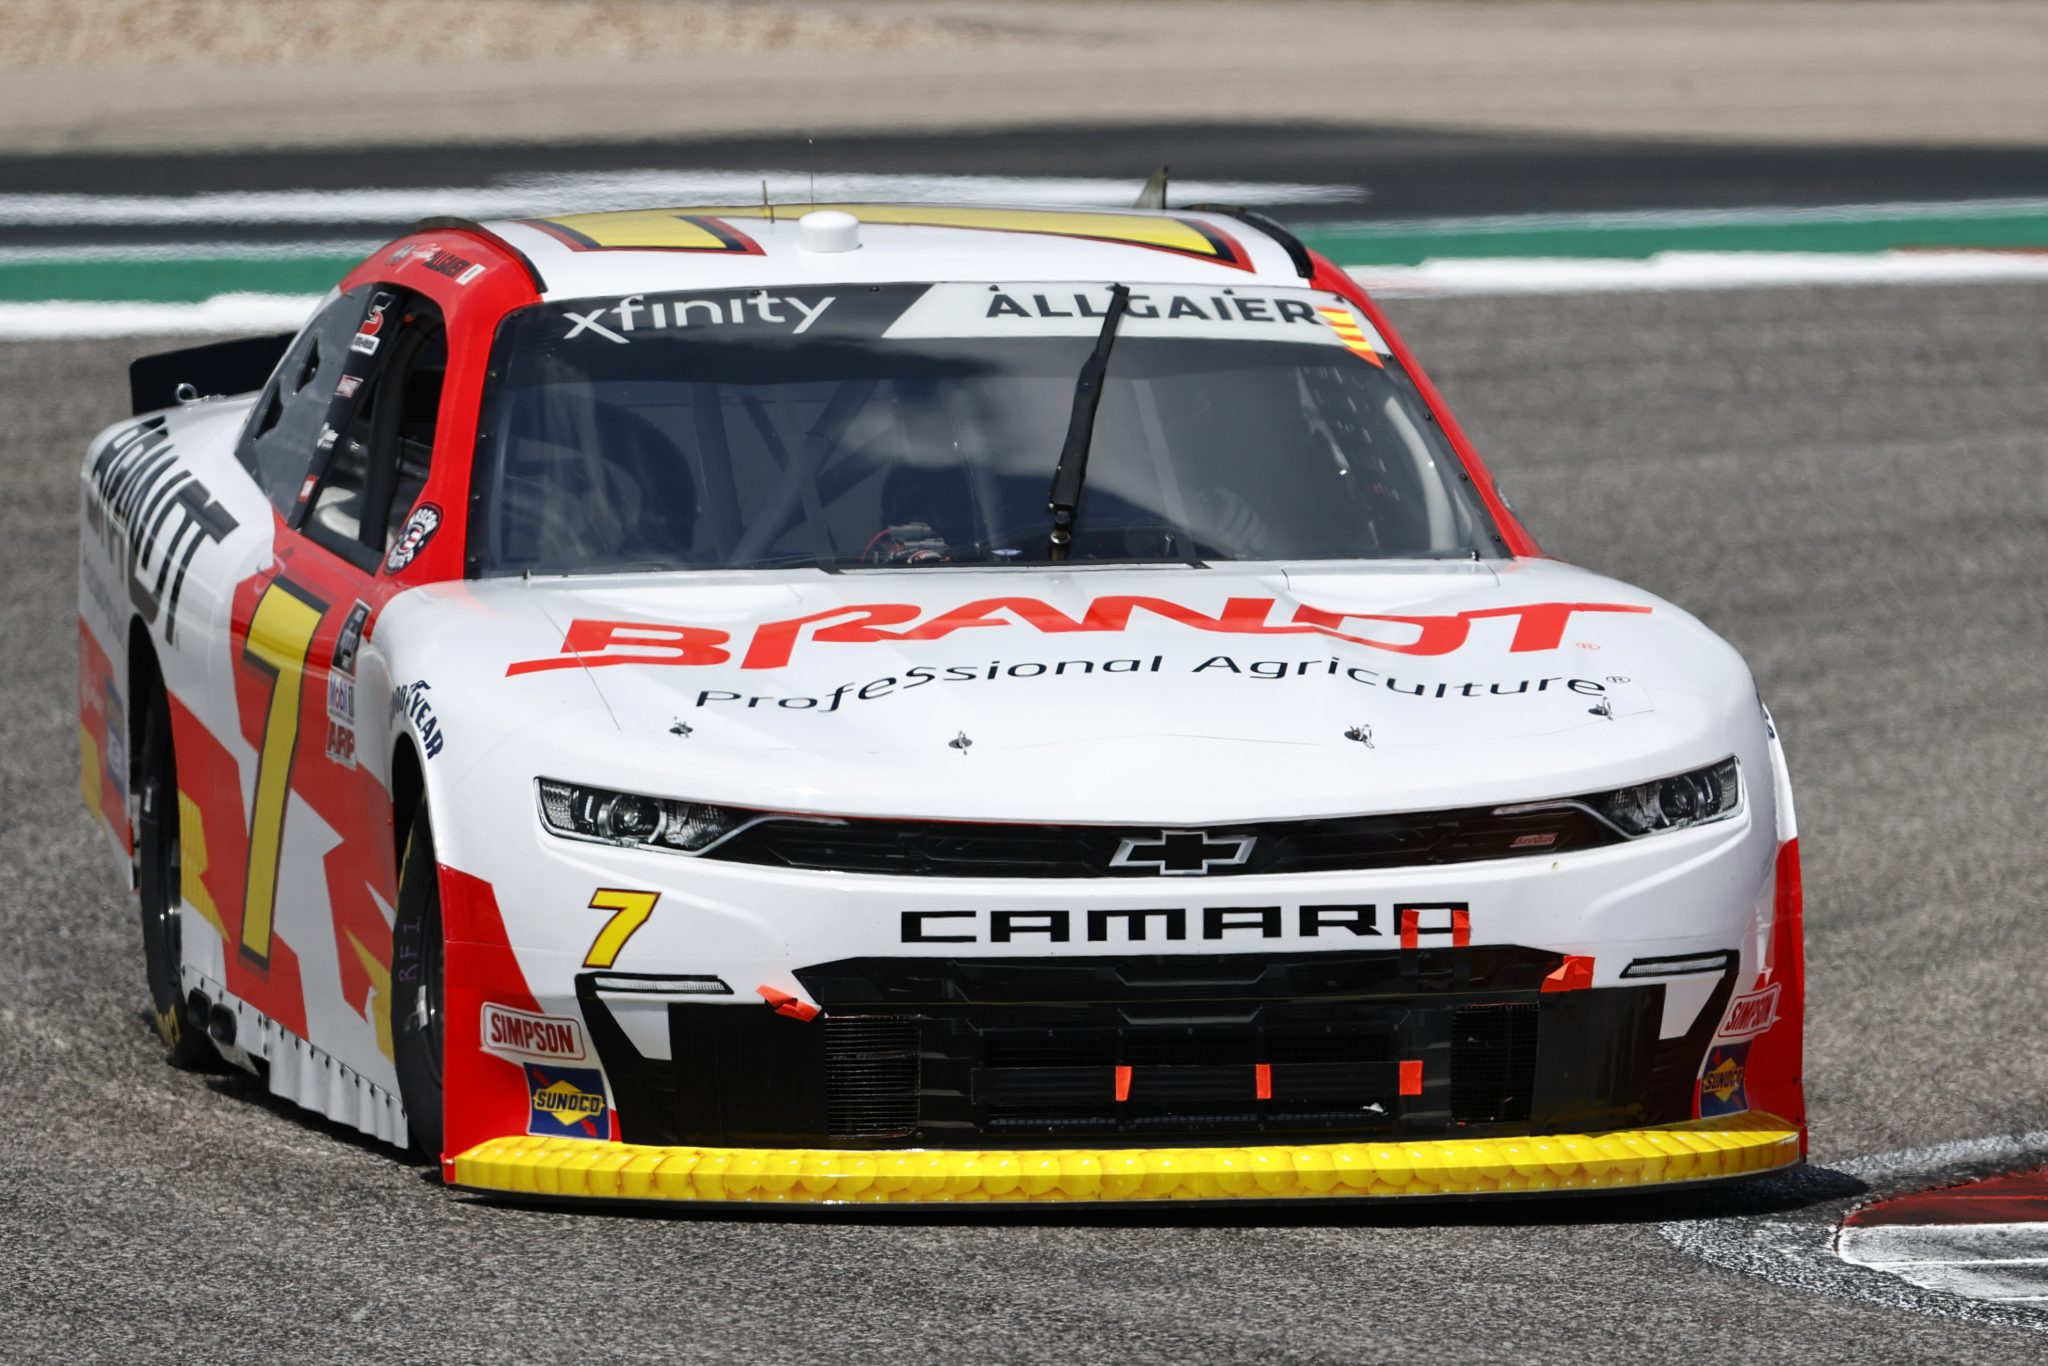 AUSTIN, TEXAS - MAY 21: Justin Allgaier, driver of the #7 BRANDT Chevrolet, drives during practice for the NASCAR Xfinity Series Pit Boss 250 at Circuit of The Americas on May 21, 2021 in Austin, Texas. (Photo by Chris Graythen/Getty Images) | Getty Images